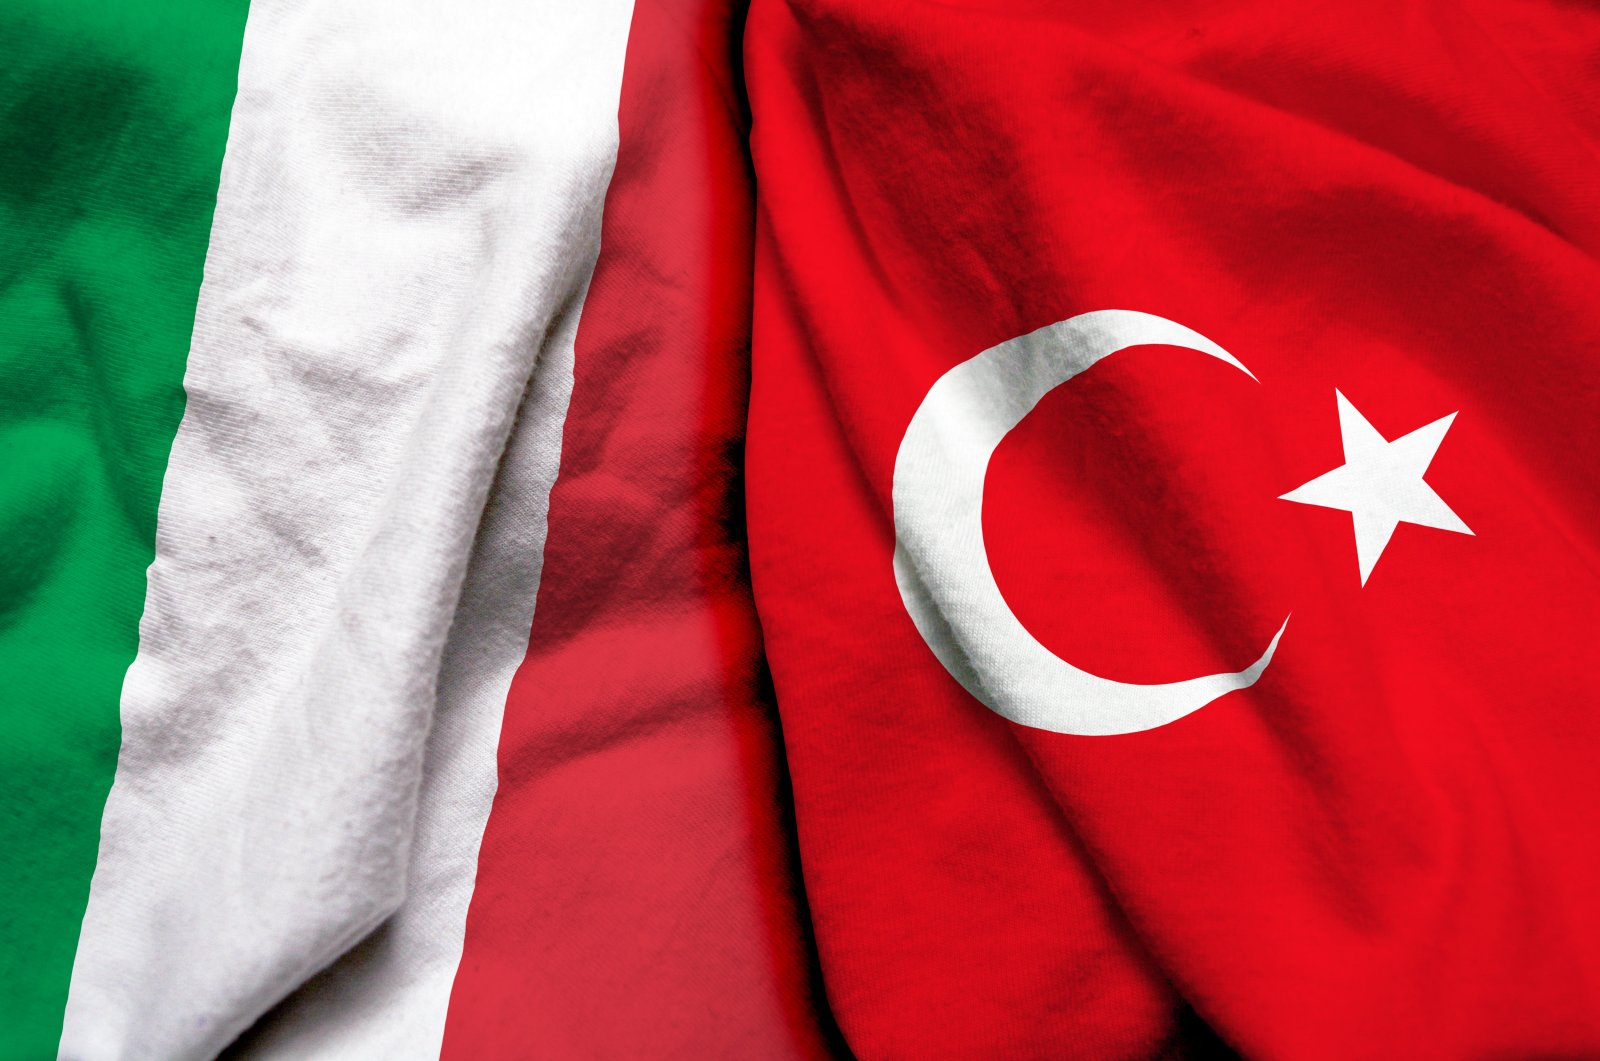 The flags of Turkey and Italy are pictured side by side in this illustration. (Photo by Shutterstock)